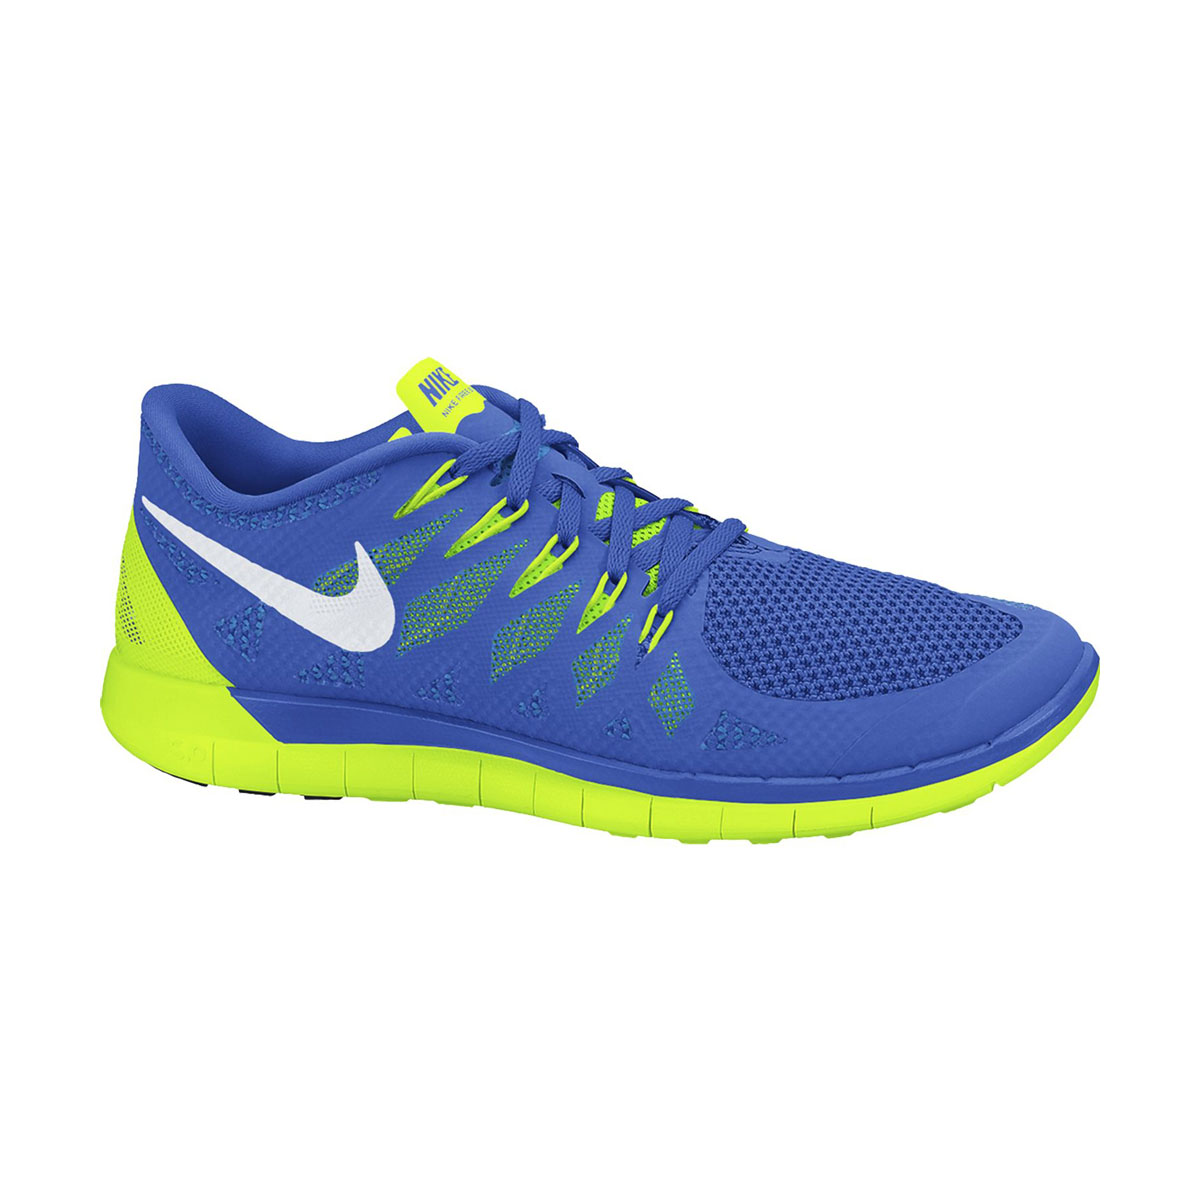 New Original Nike Free 5.0 Running Shoes Men Trainers